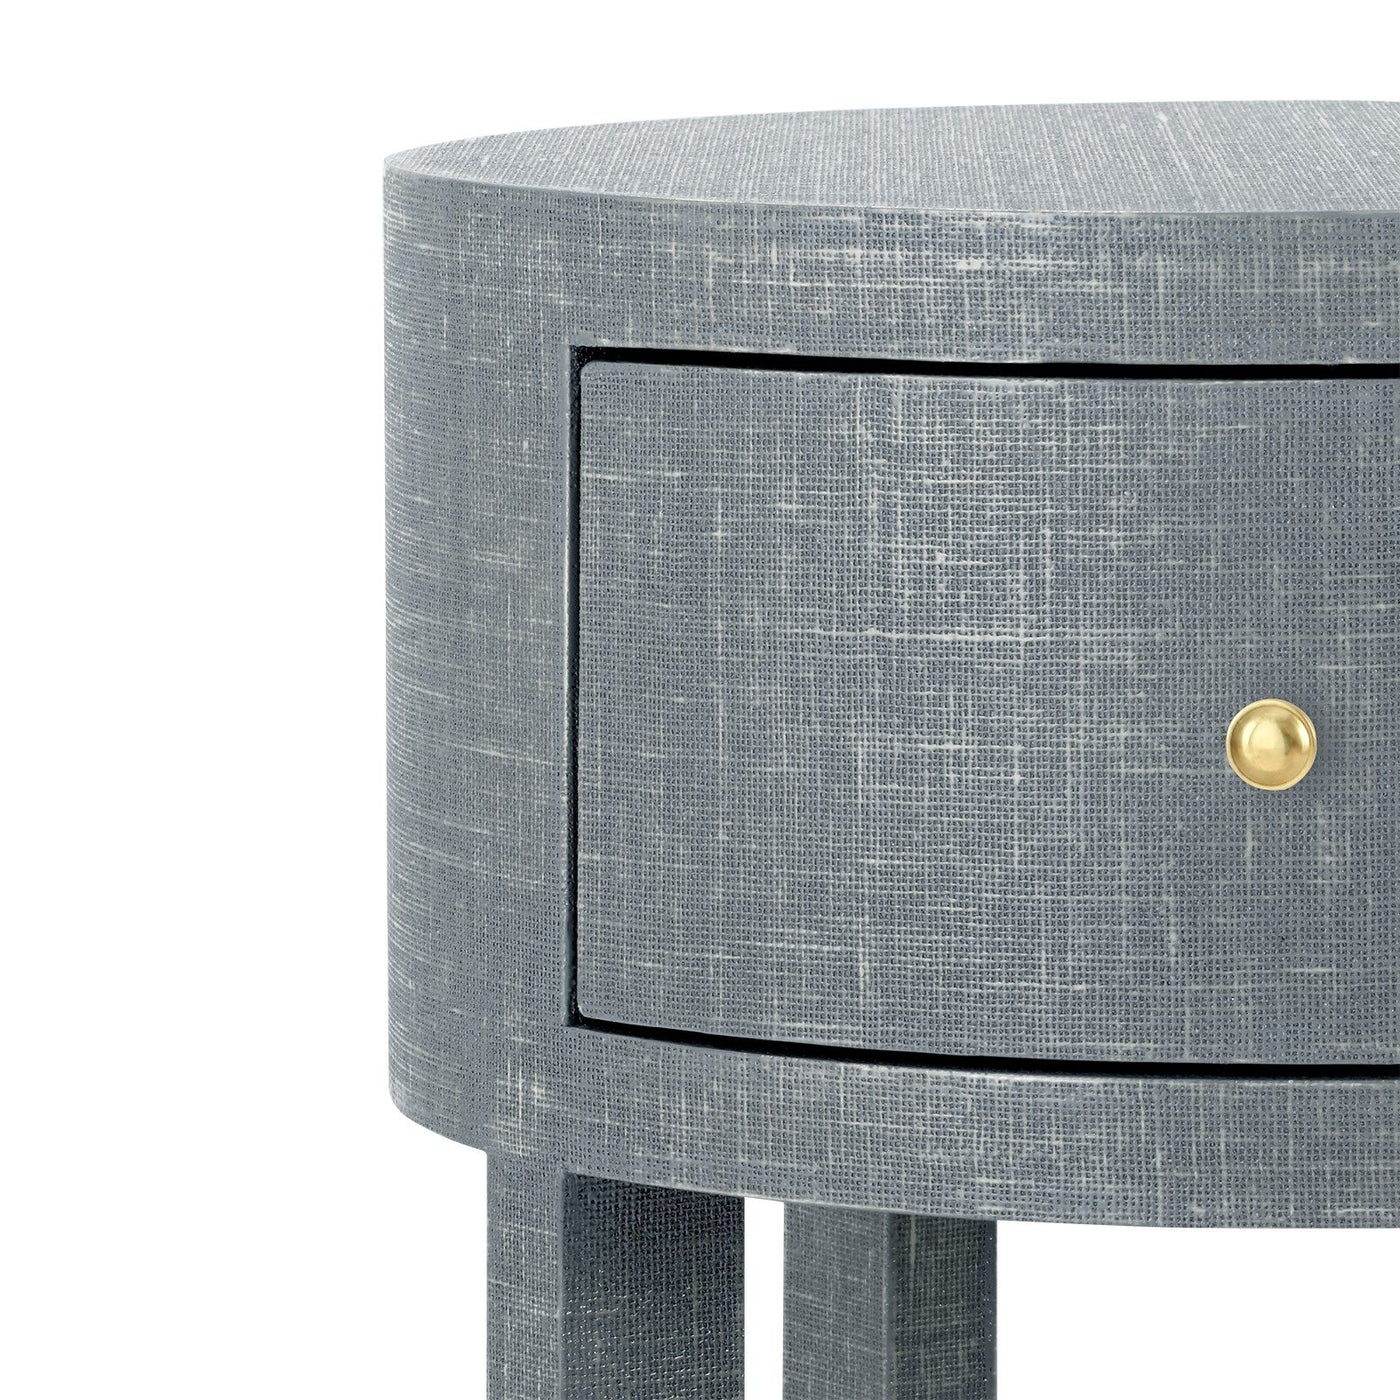 bungalow 5 claudette 1 drawer side table round drawer detail